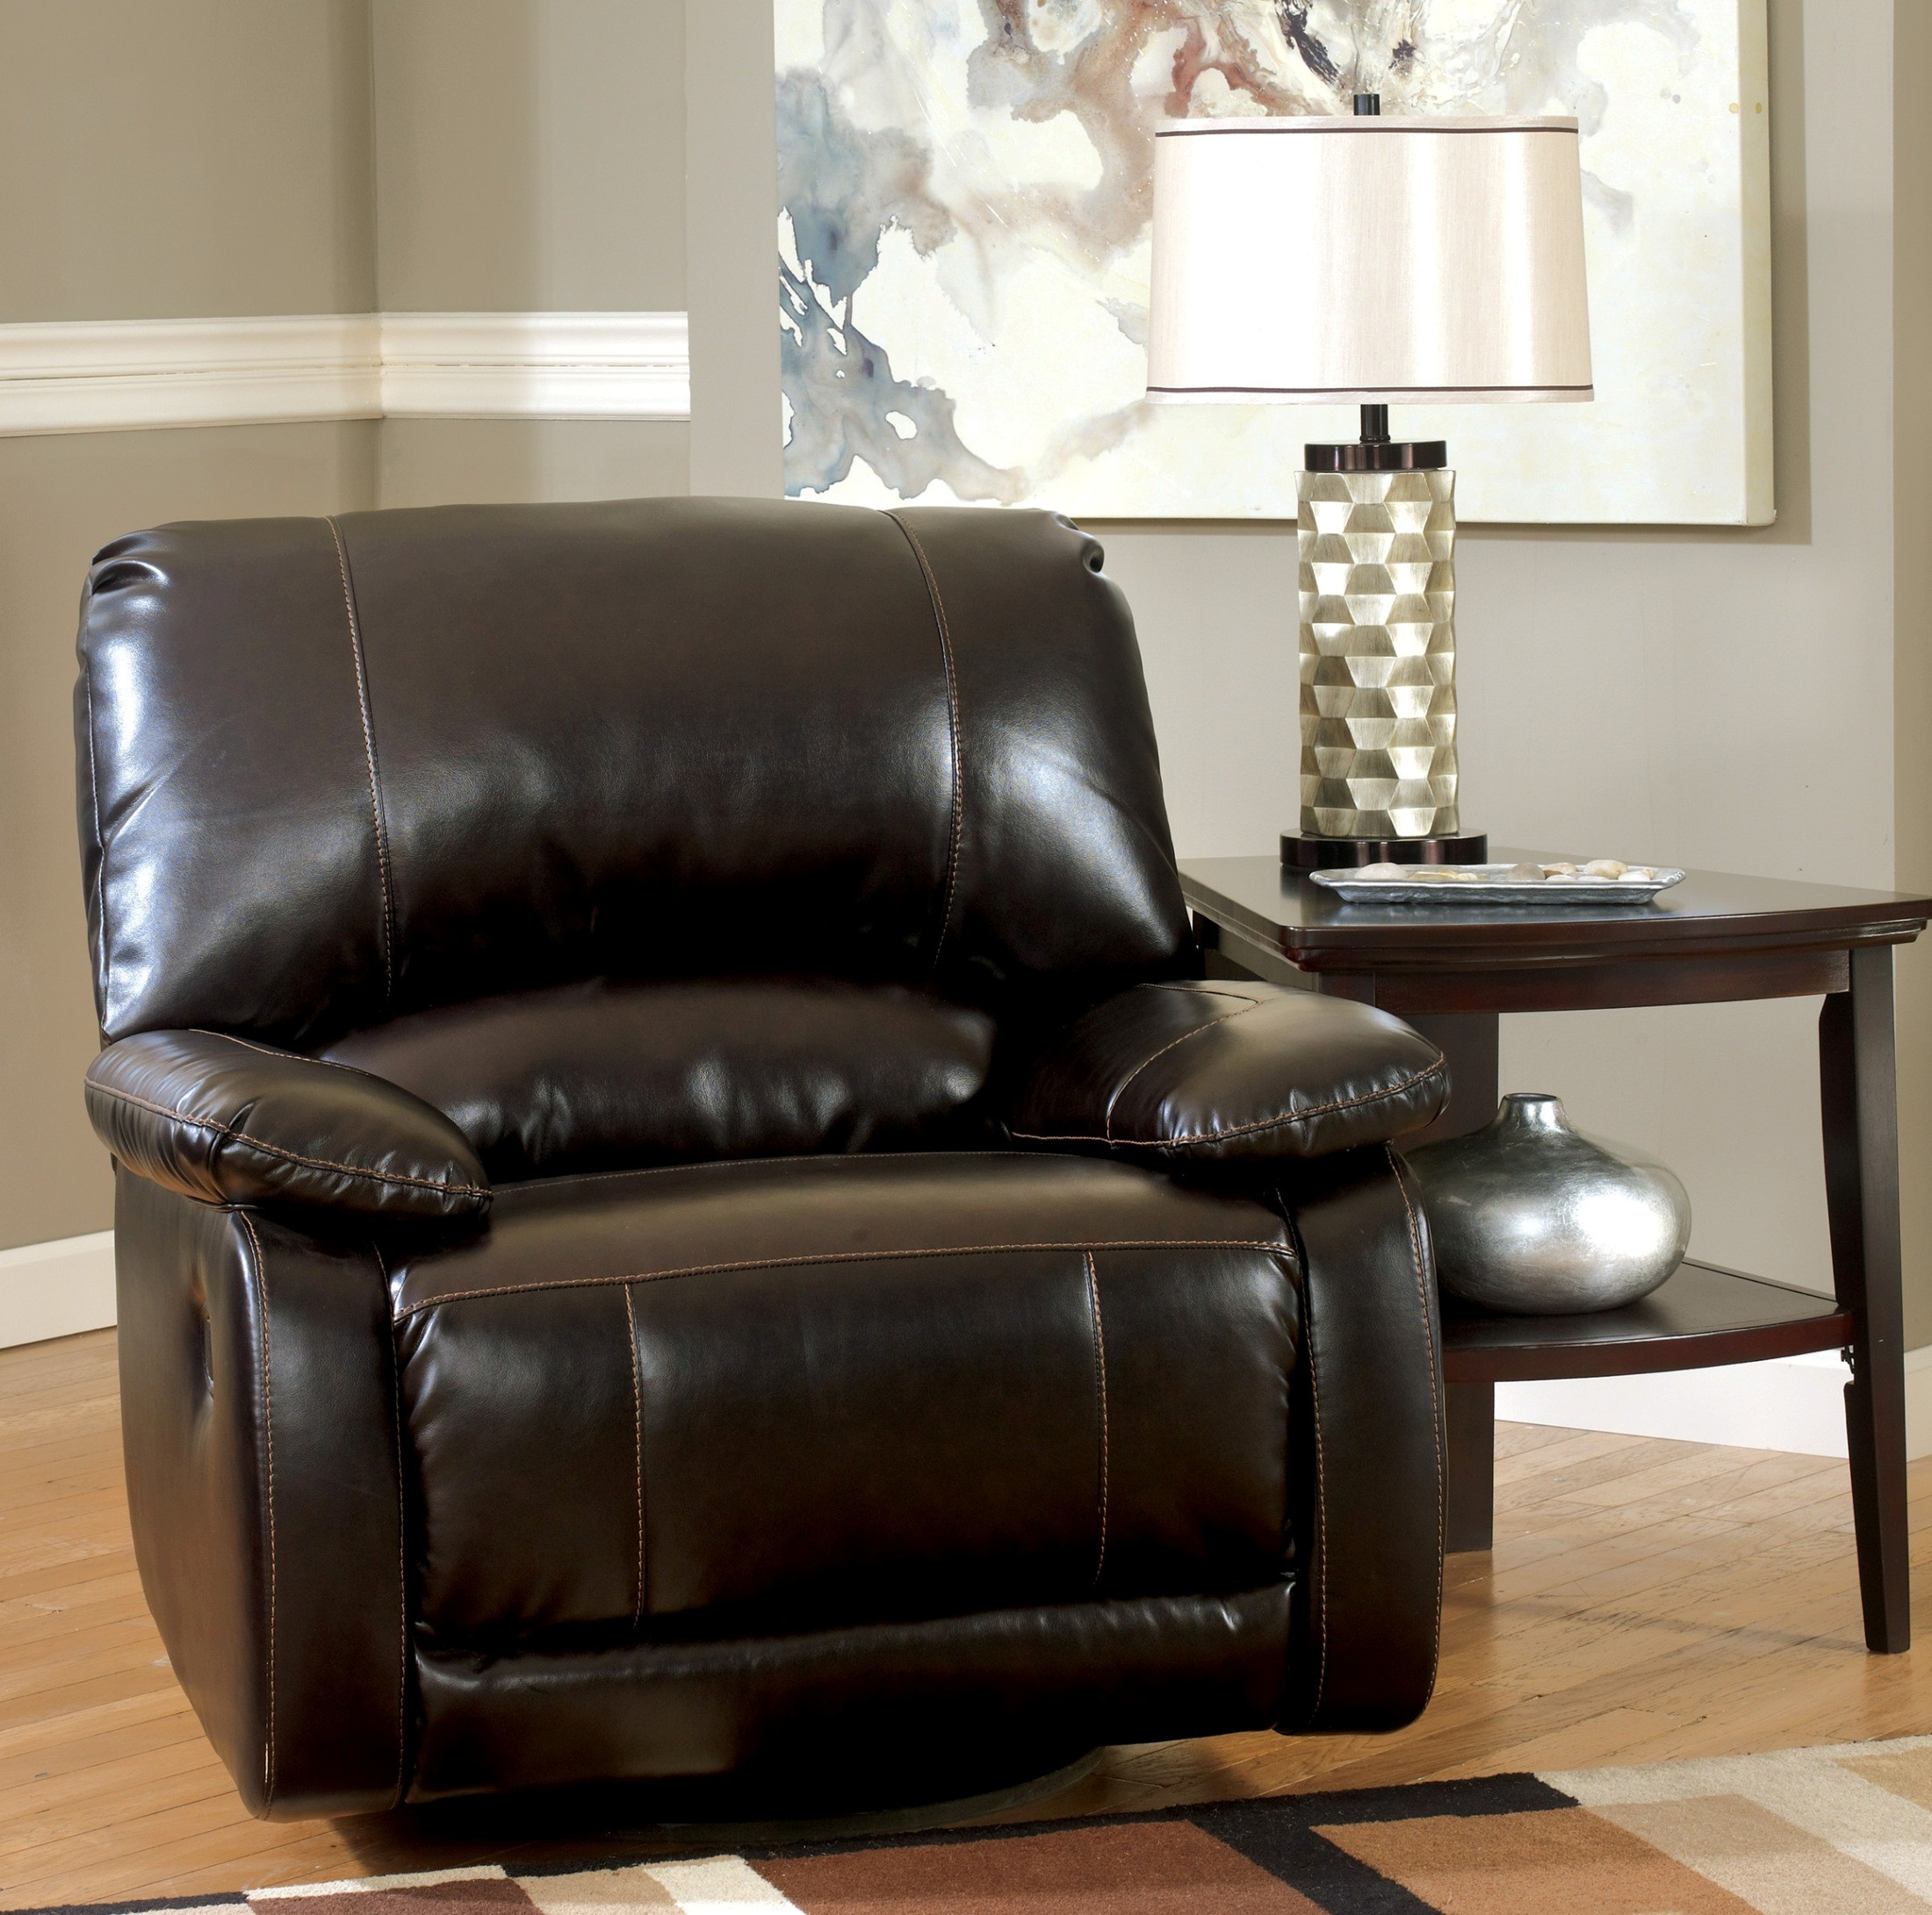 Rollins Cocktail Table By Ashley T628: Capote DuraBlend Chocolate Swivel Glider Recliner From